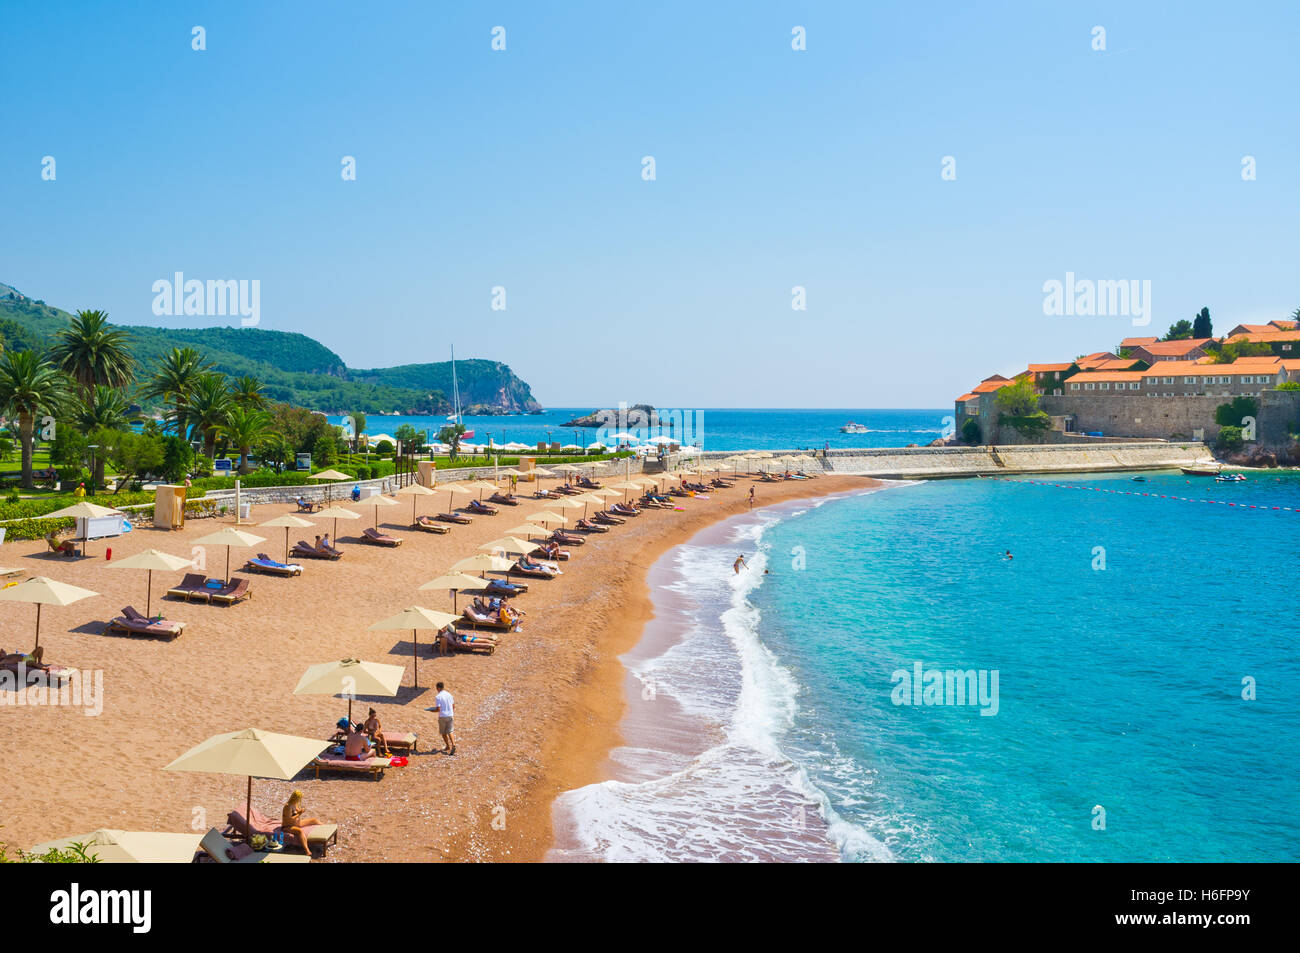 One of the most beautiful and expensive beaches of Montenegro, Sveti Stefan - Stock Image